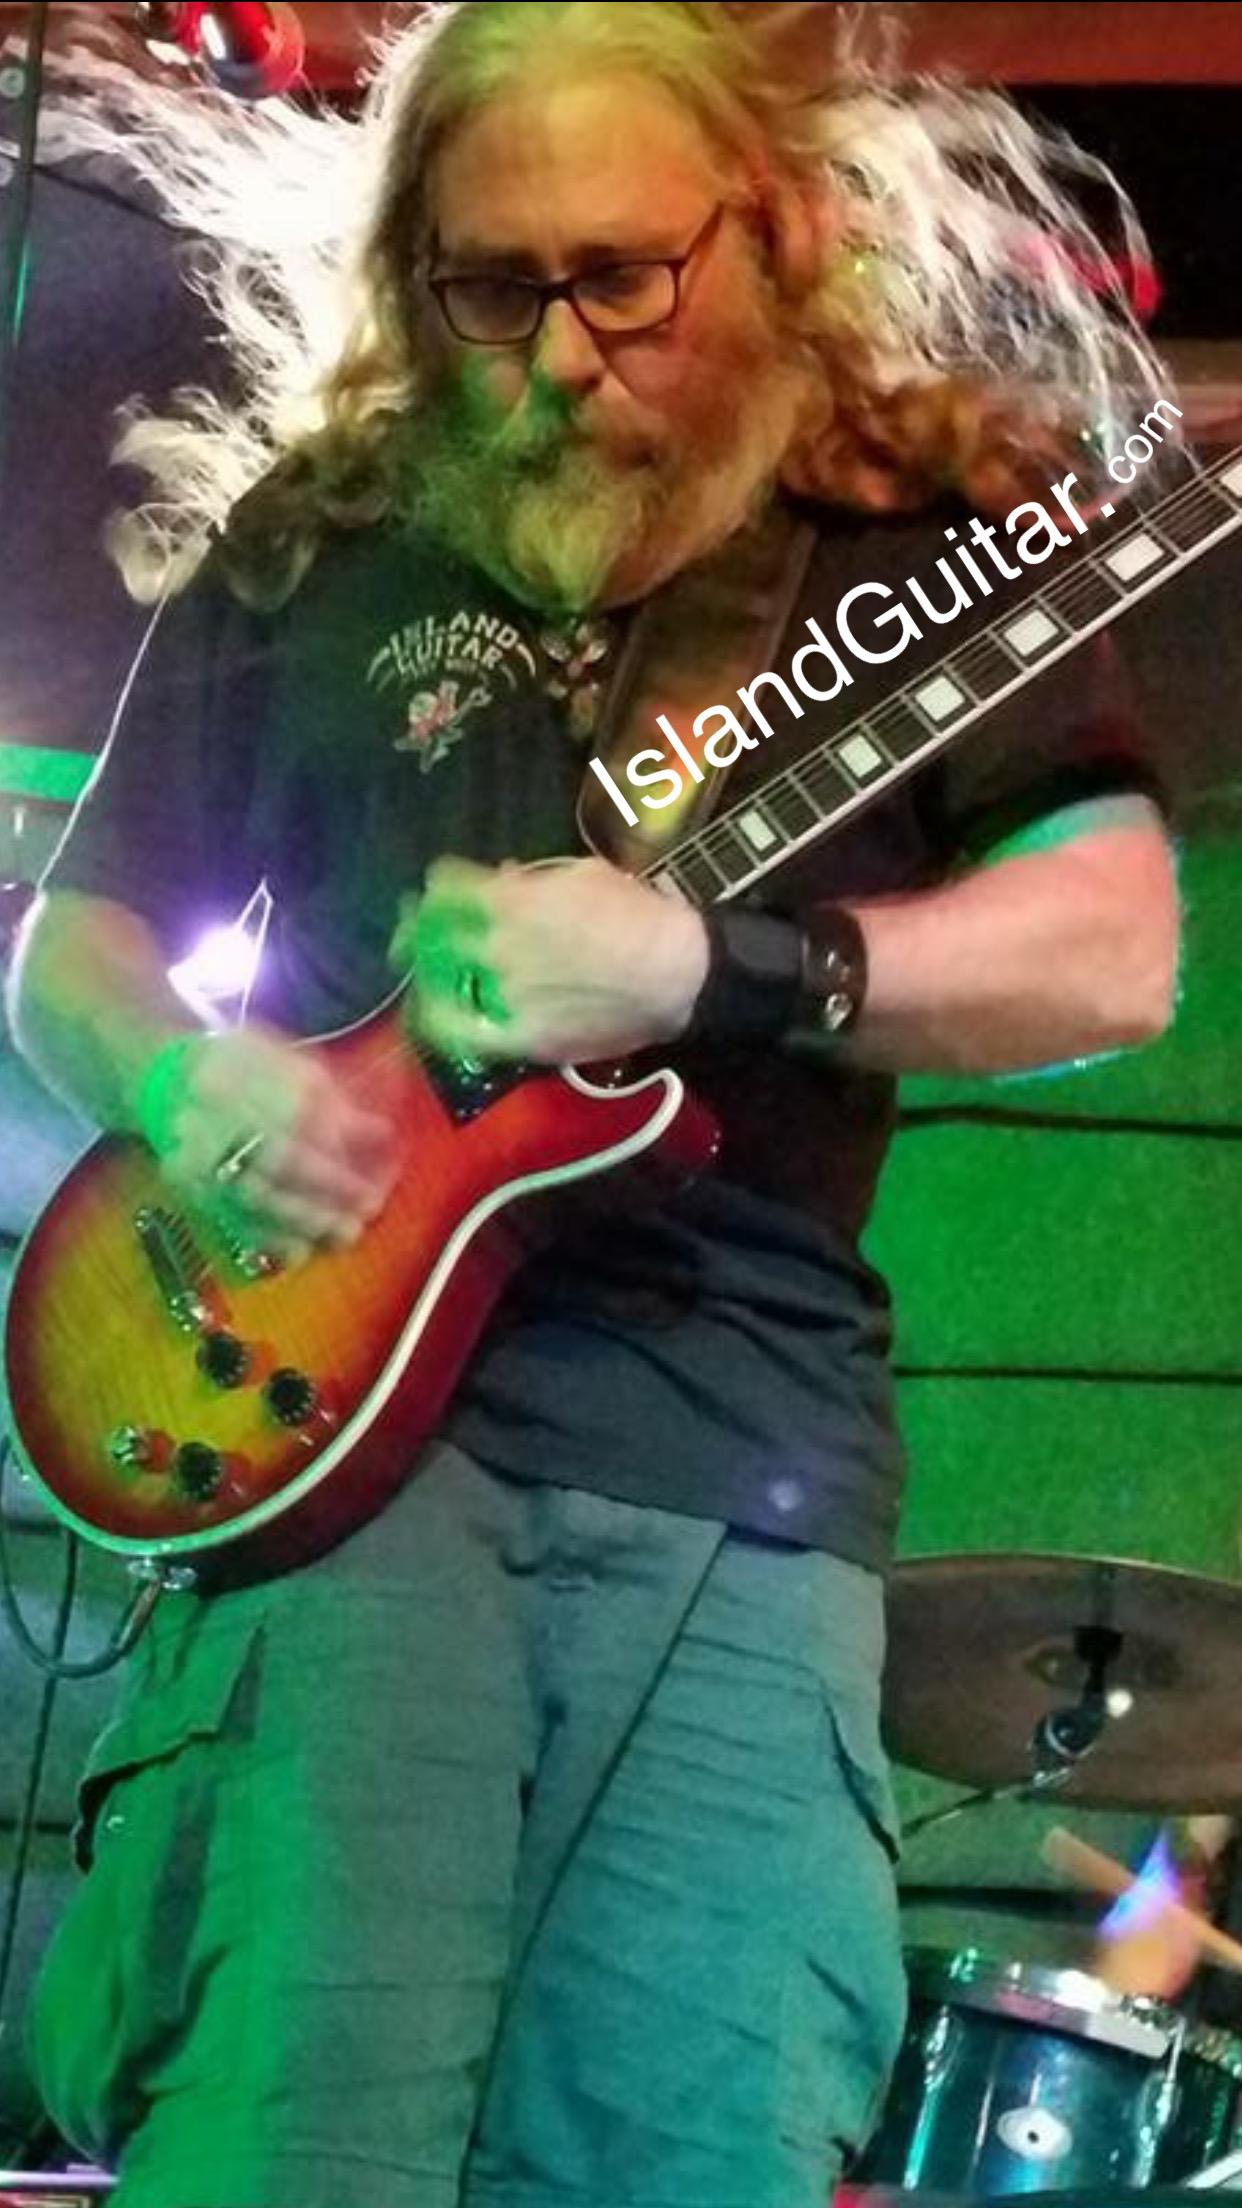 Playing my new Dean Thoroughbred guitar with my blues rock